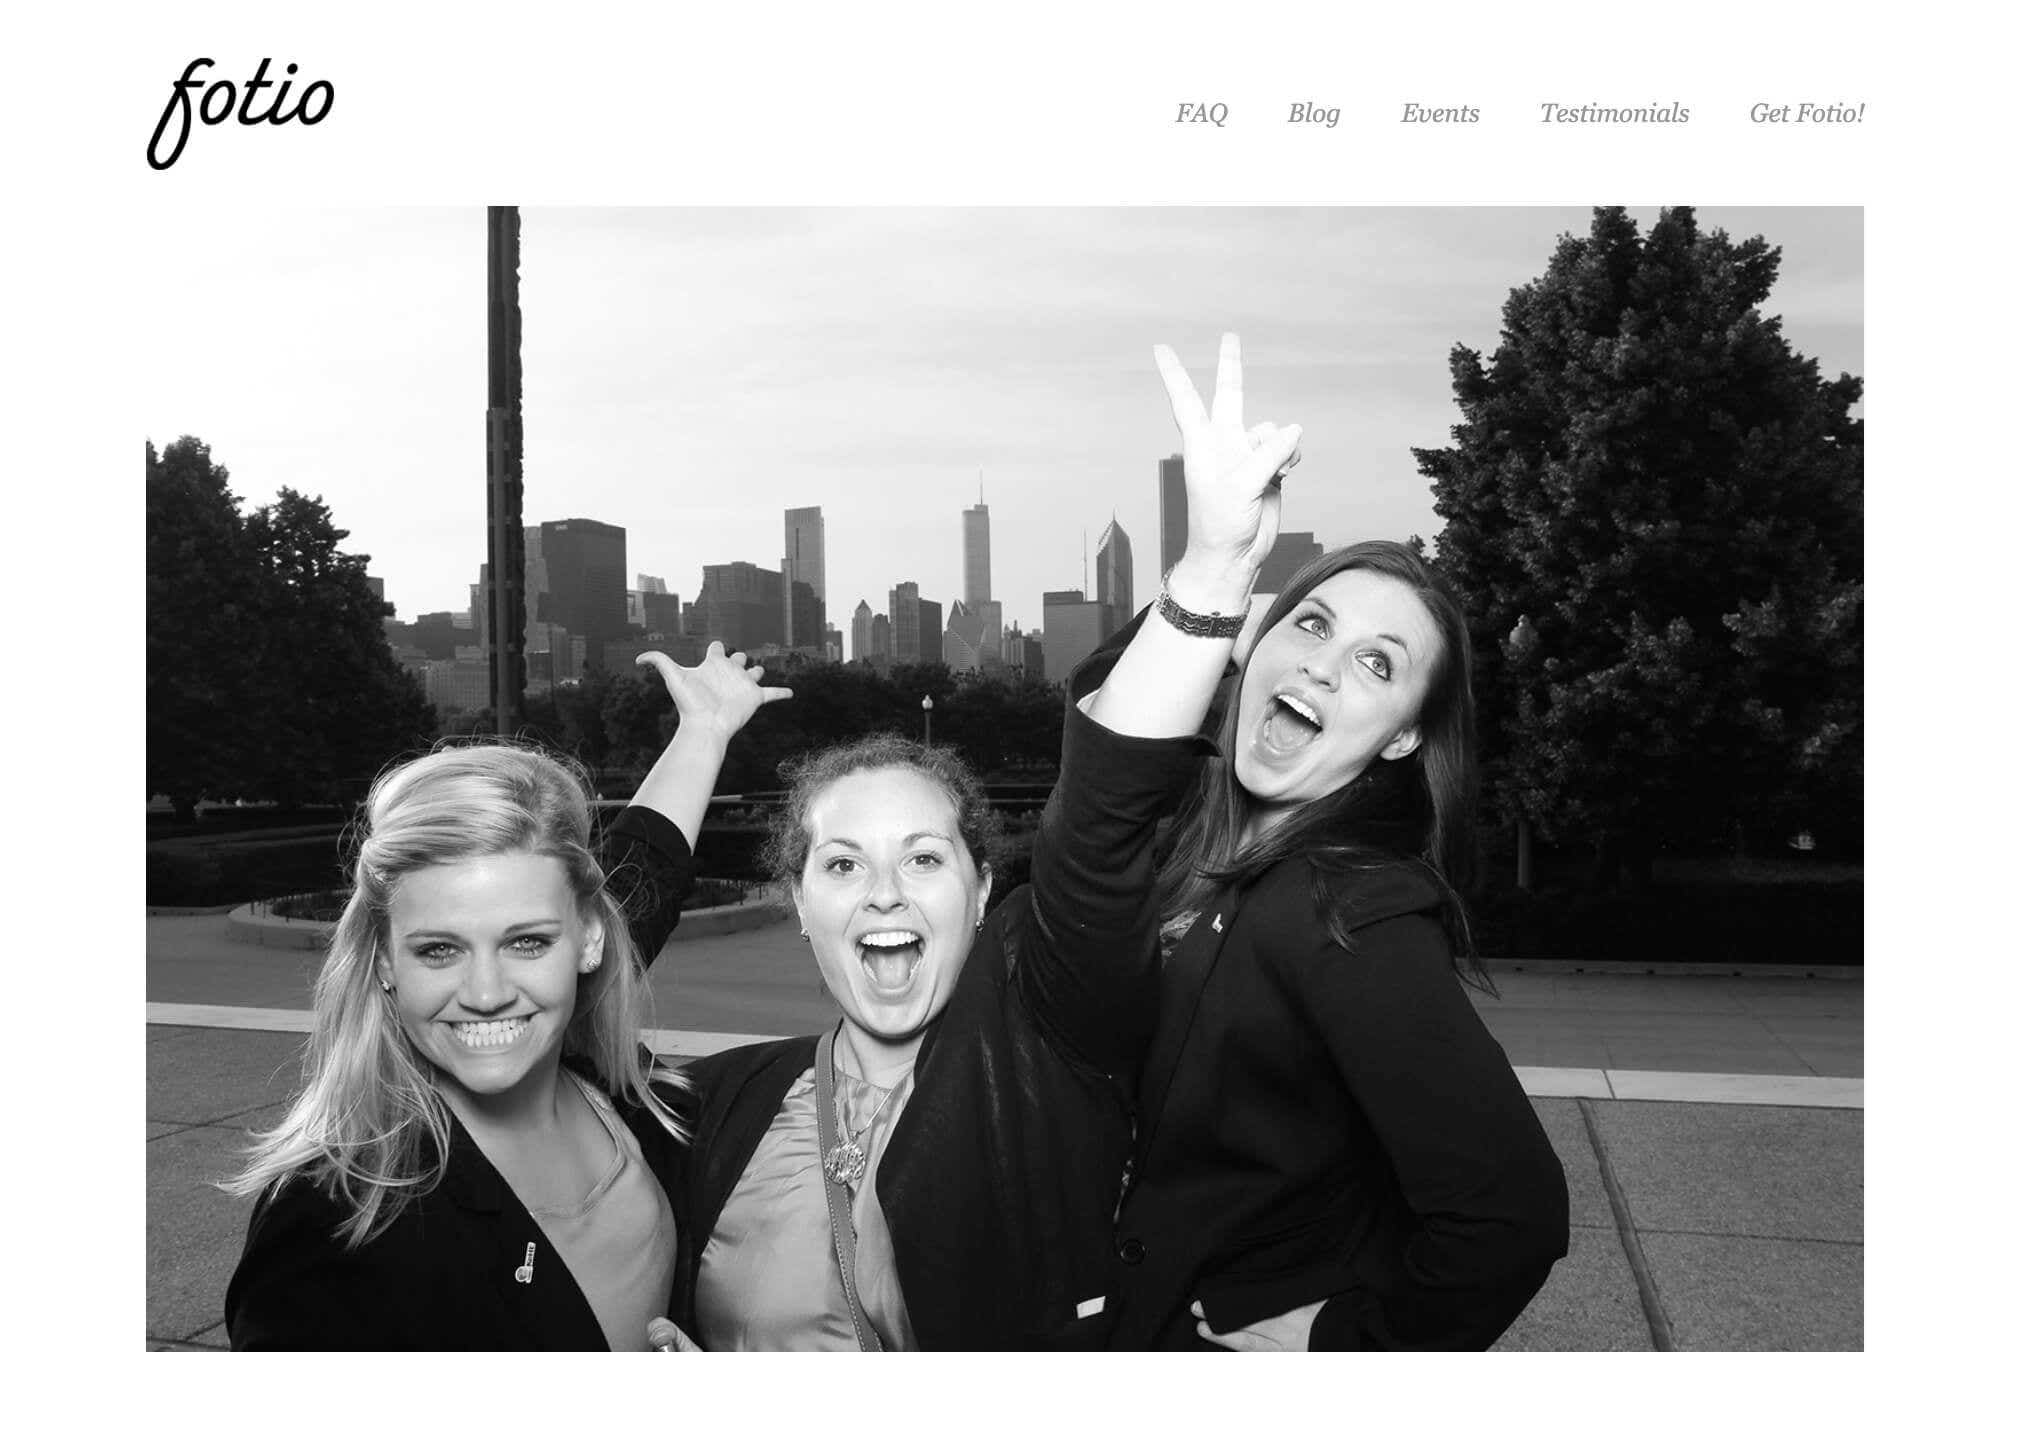 fotio website design